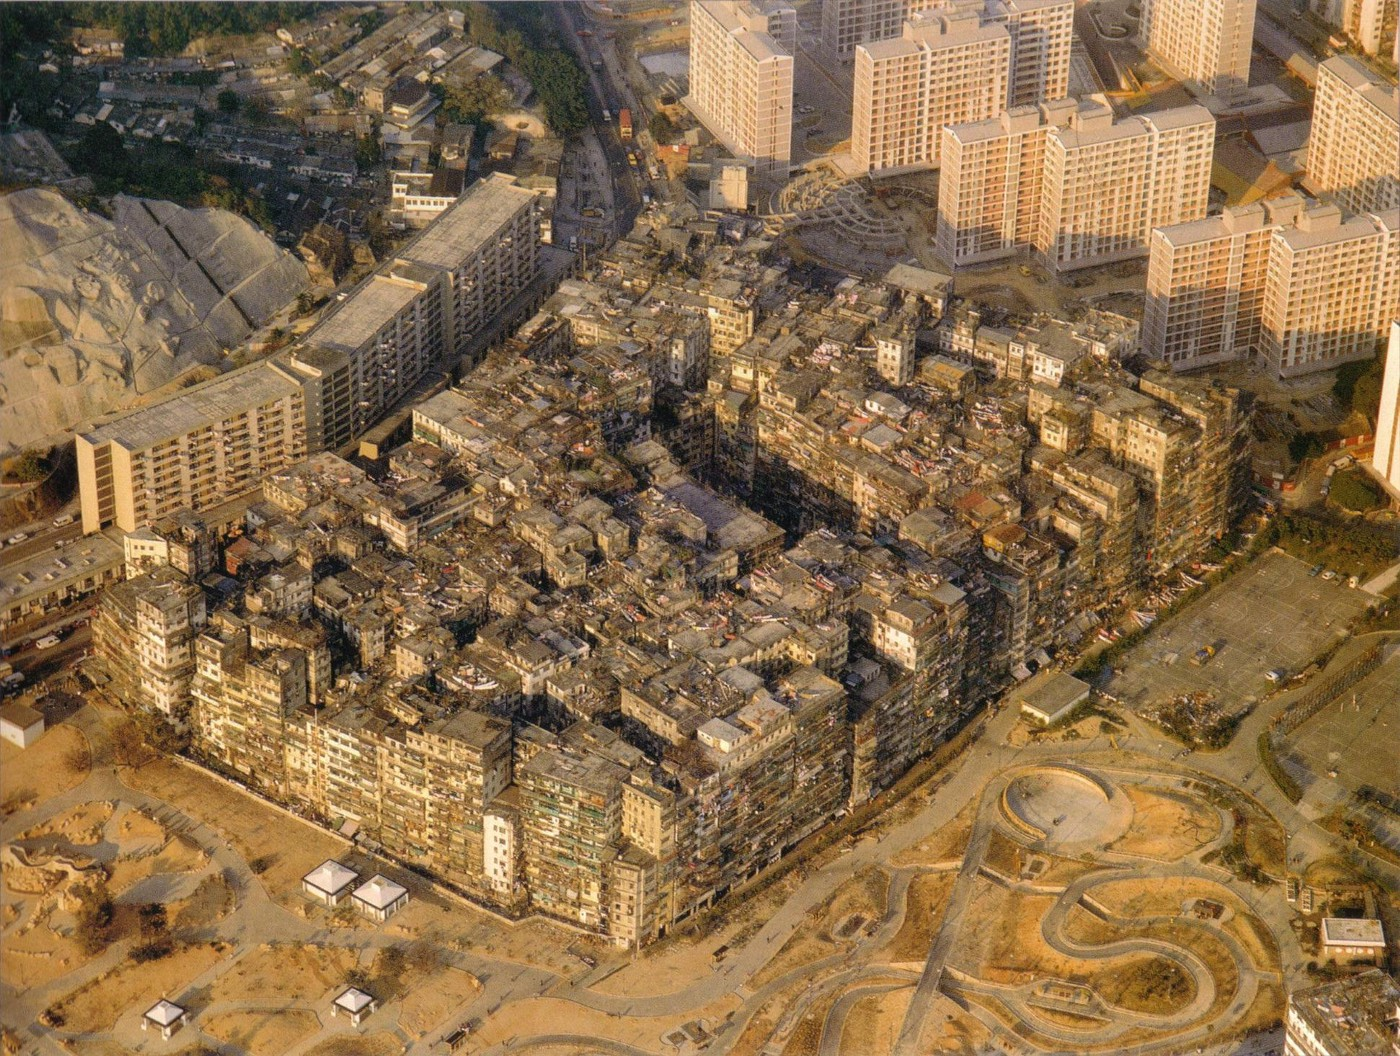 Kowloon Walled City, the city of darkness